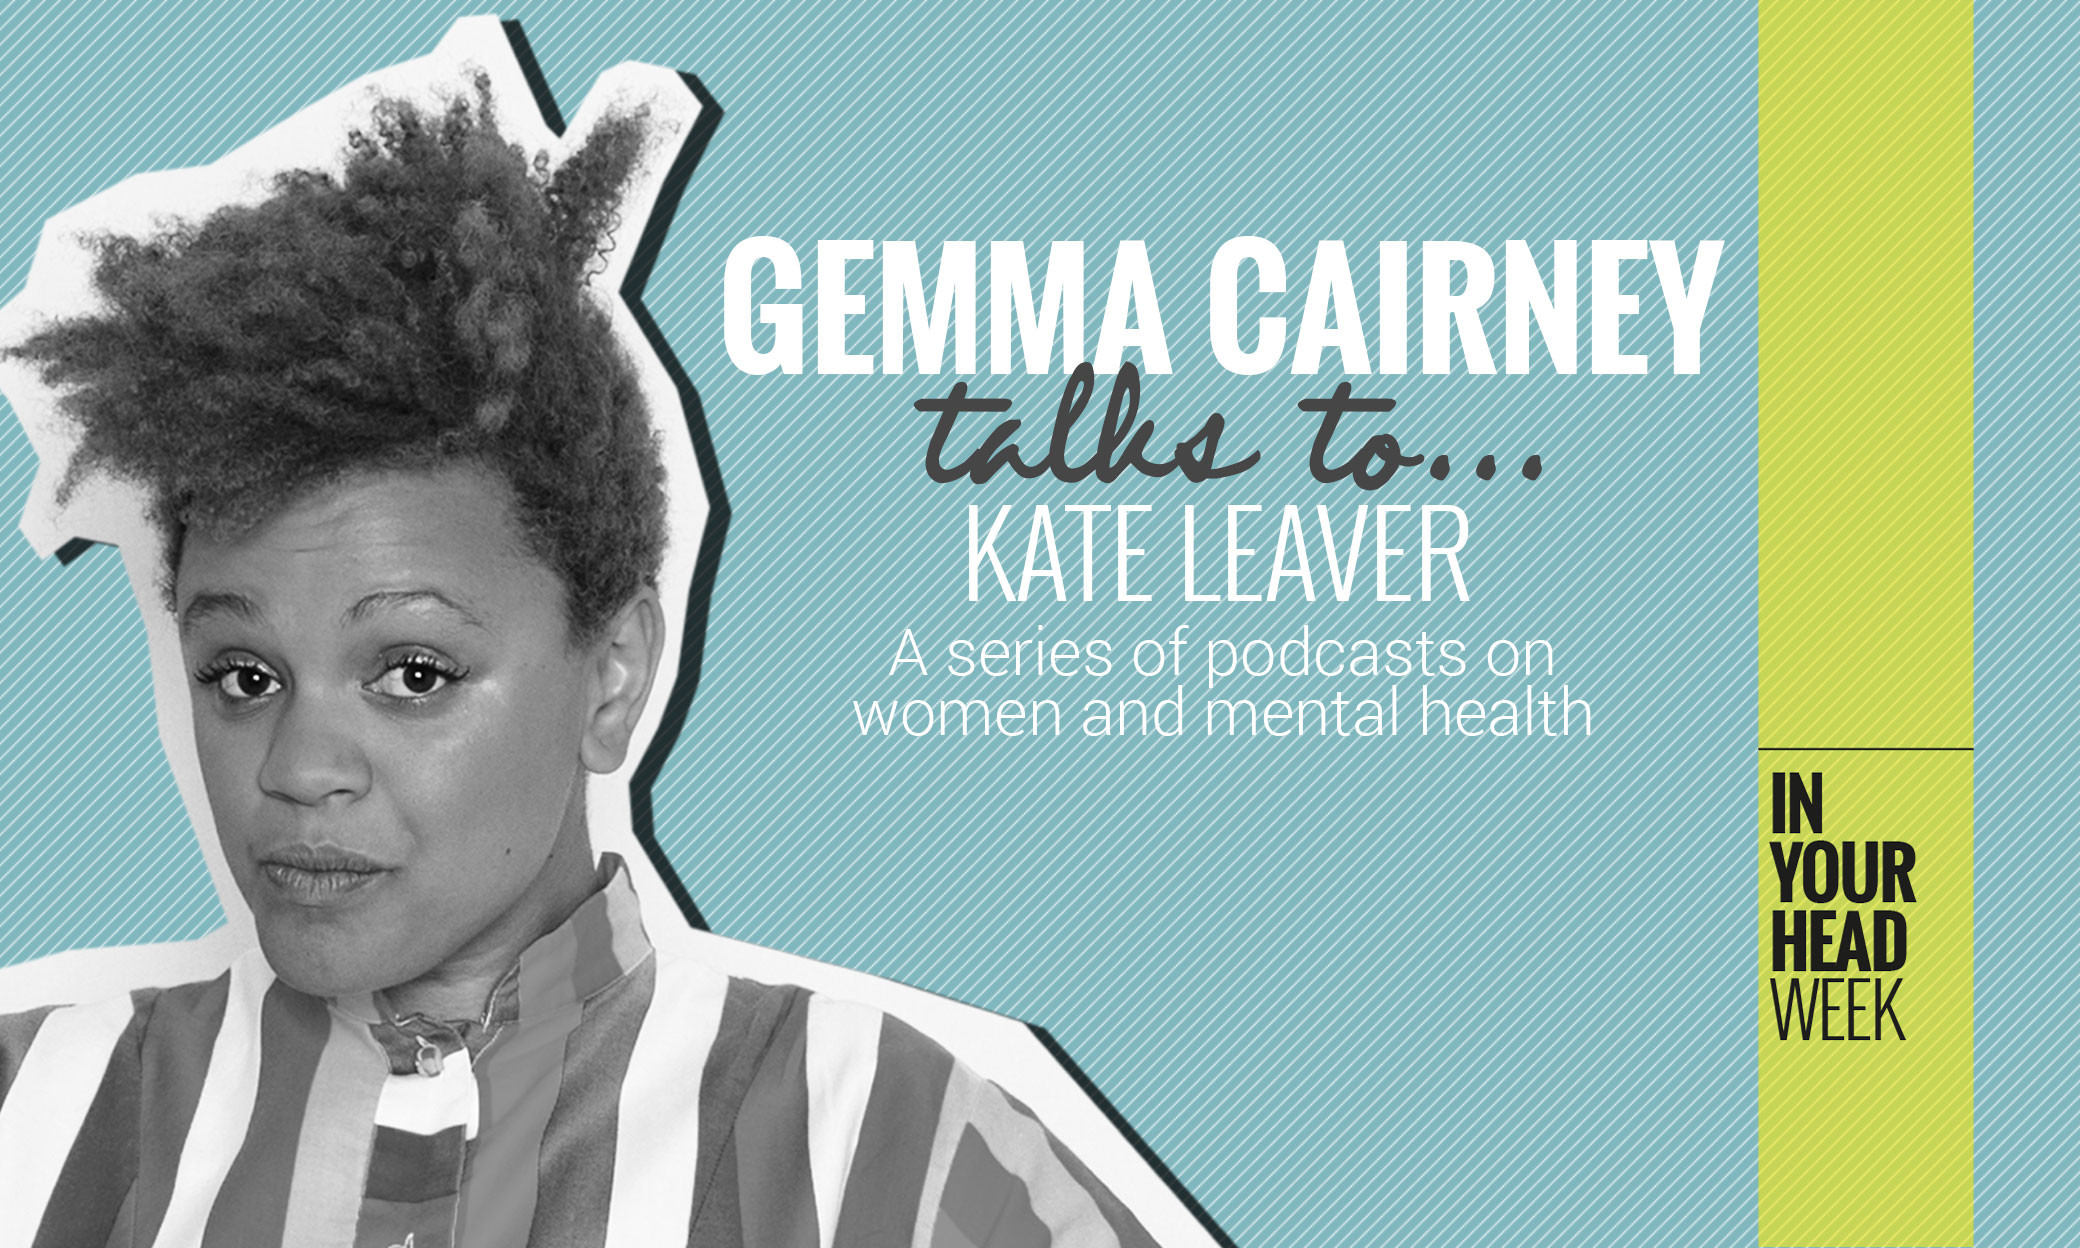 in my head with gemma cairney - Kate Leaver appears on presenter/journalist/champion Gemma Cairney's podcast series, In My Head, to talk about bipolar disorder. For The Pool.